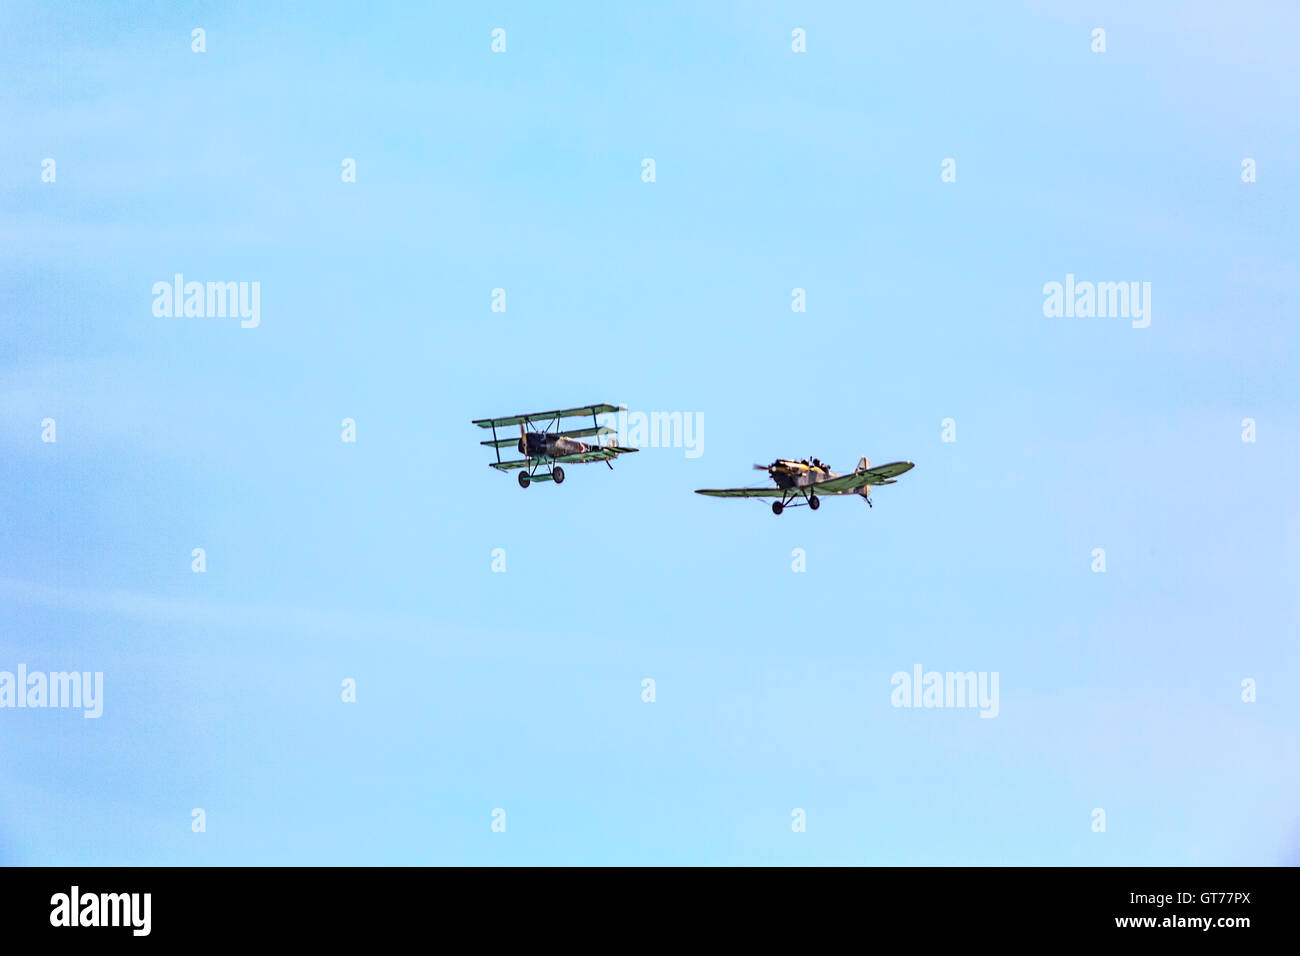 The Great War Display Team, A Fokker Dr 1 Triplane and a Junkers CL1 at Eastbourne Airbourne International Airshow - Stock Image